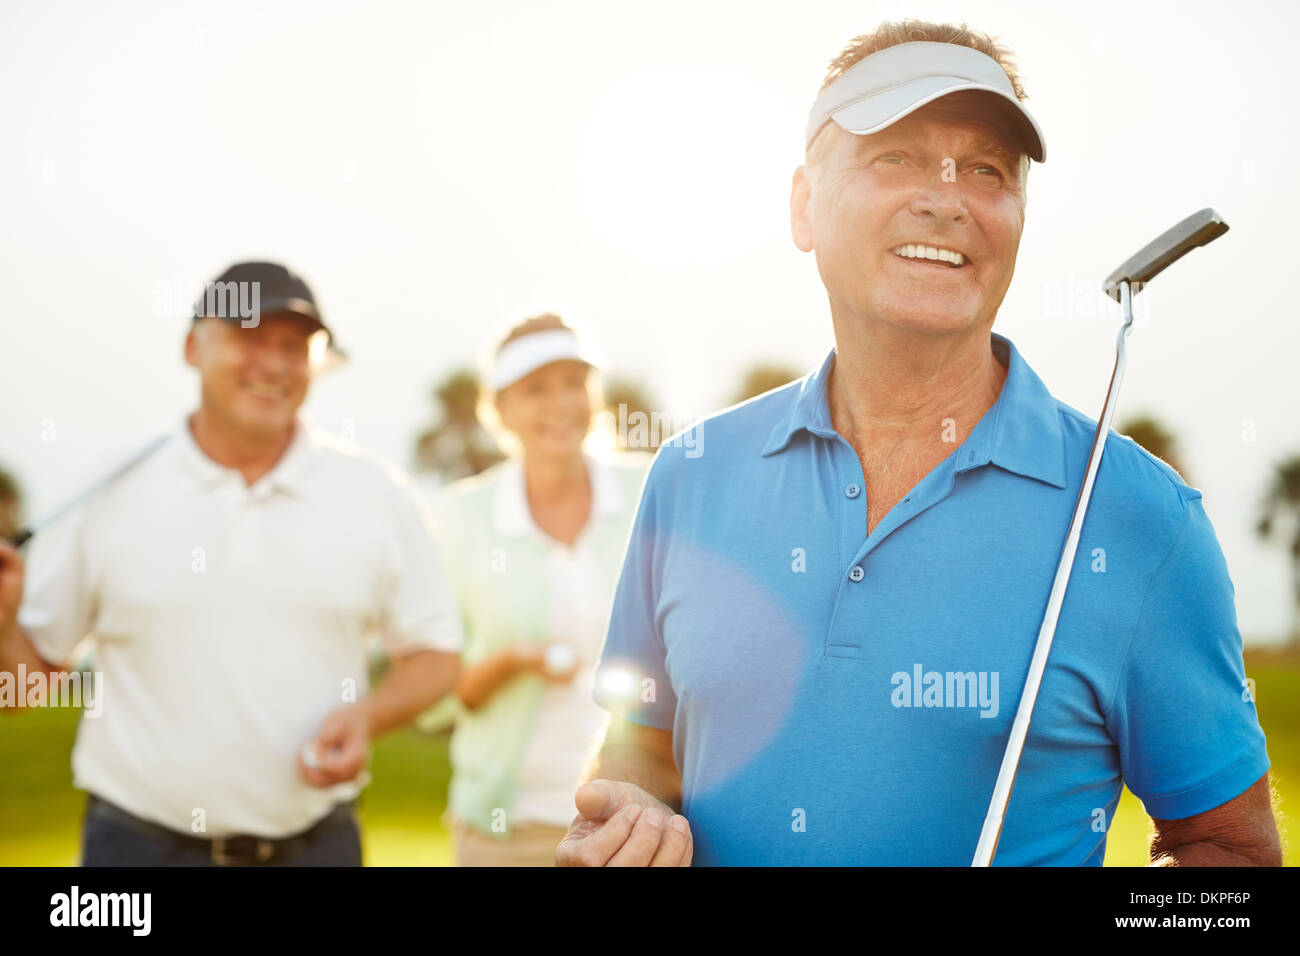 Senior adults on golf course - Stock Image